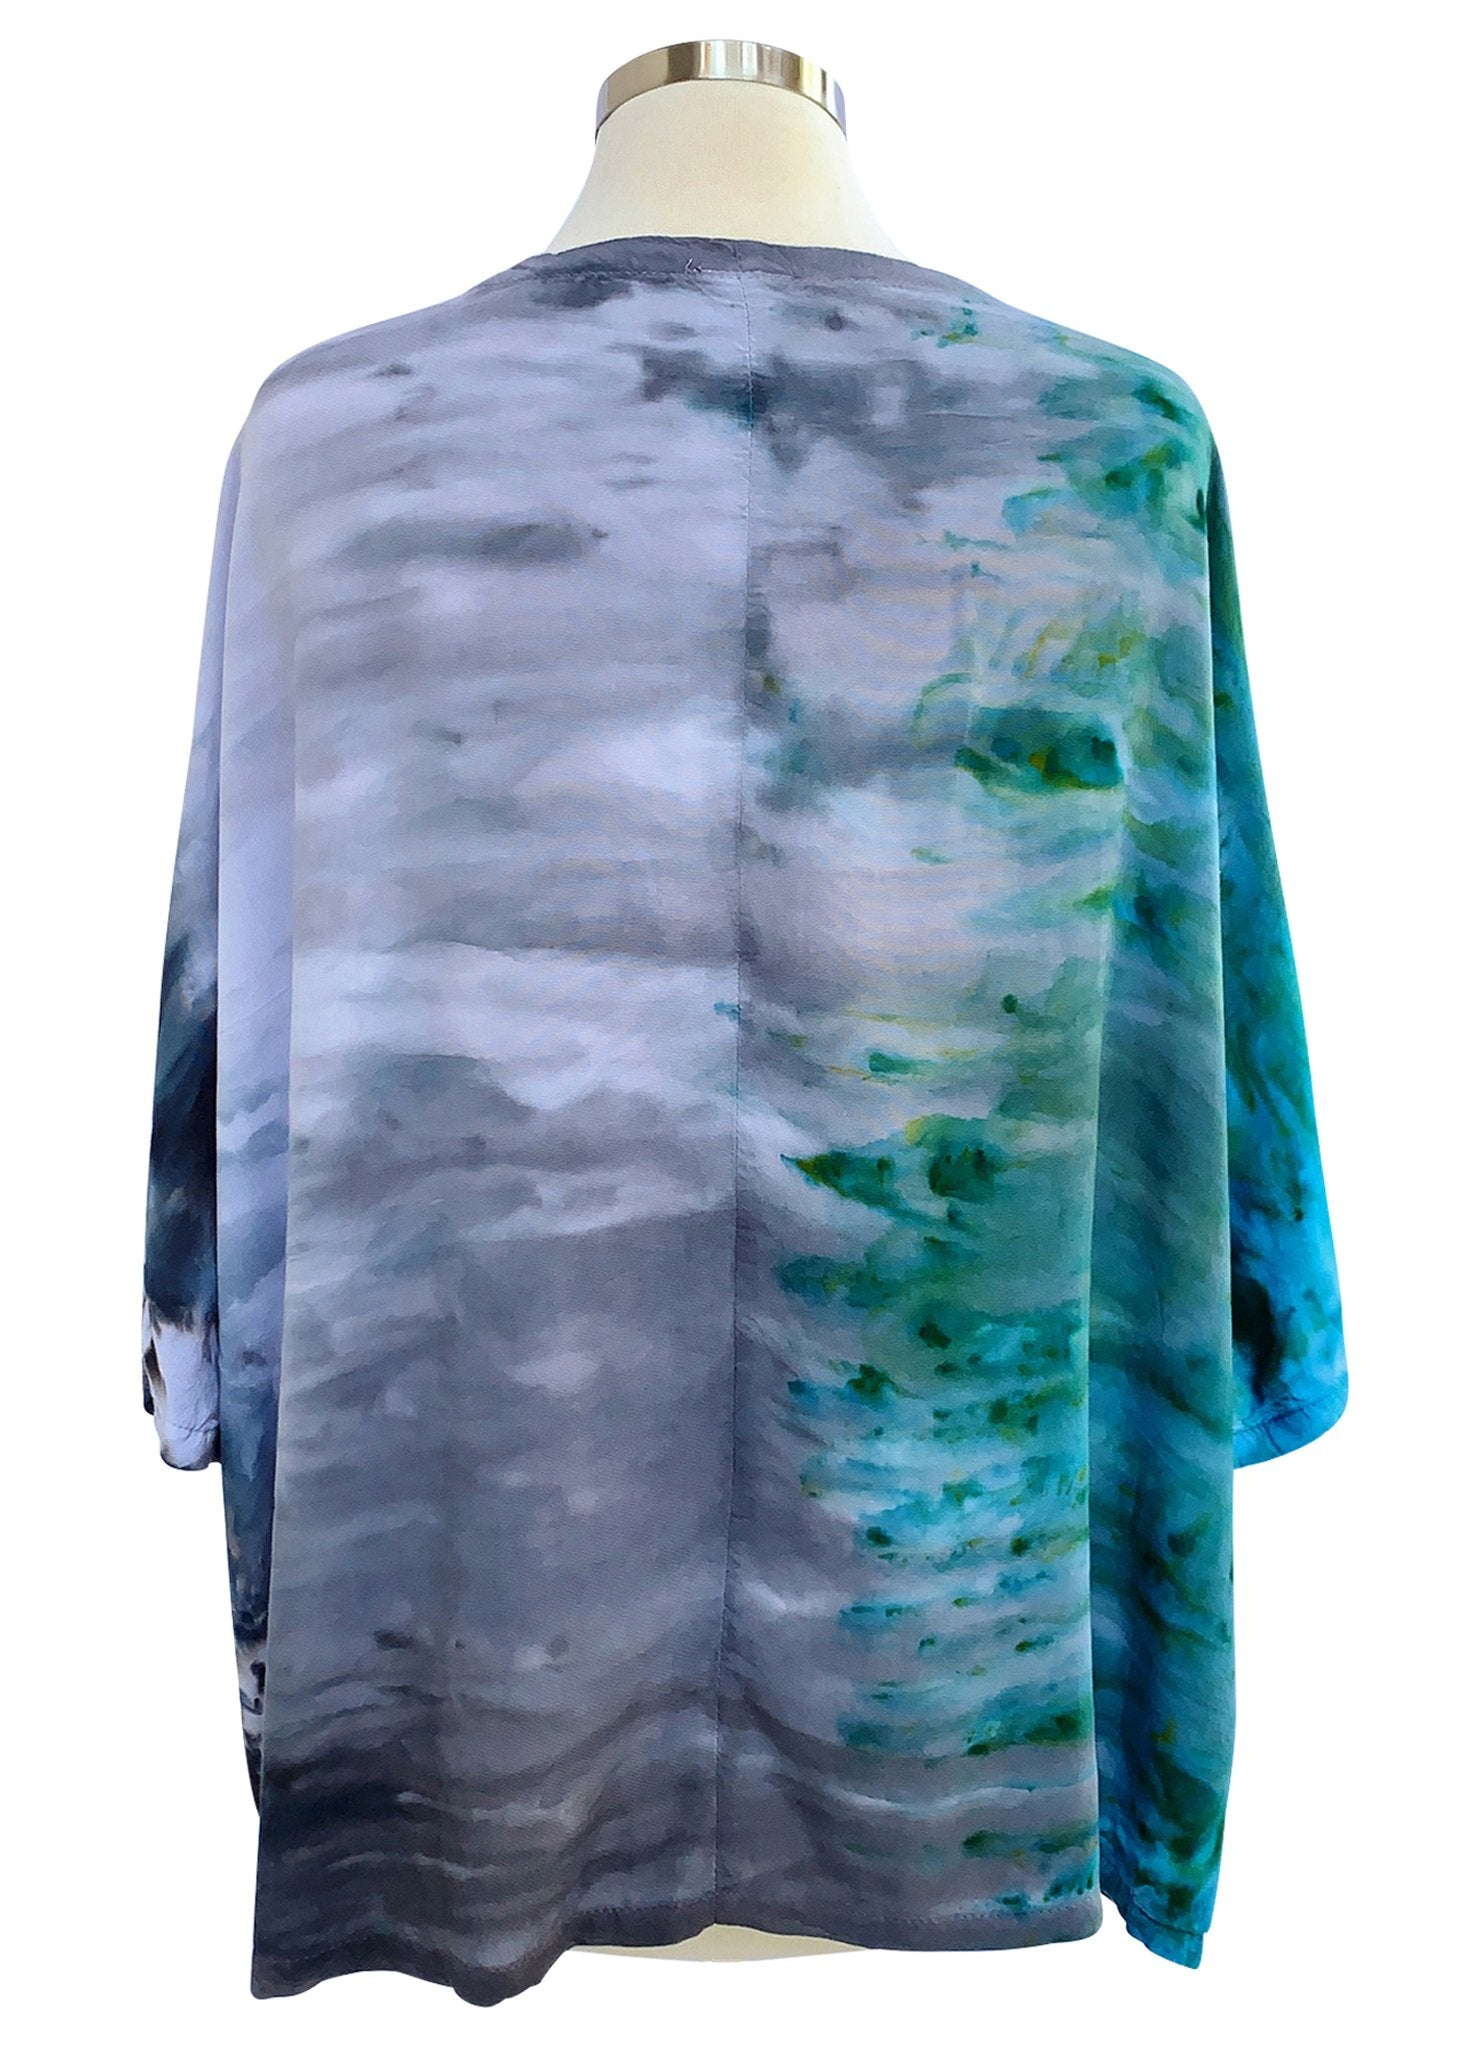 Easy Rayon Shirt in Dolphin - Top - Dyetology